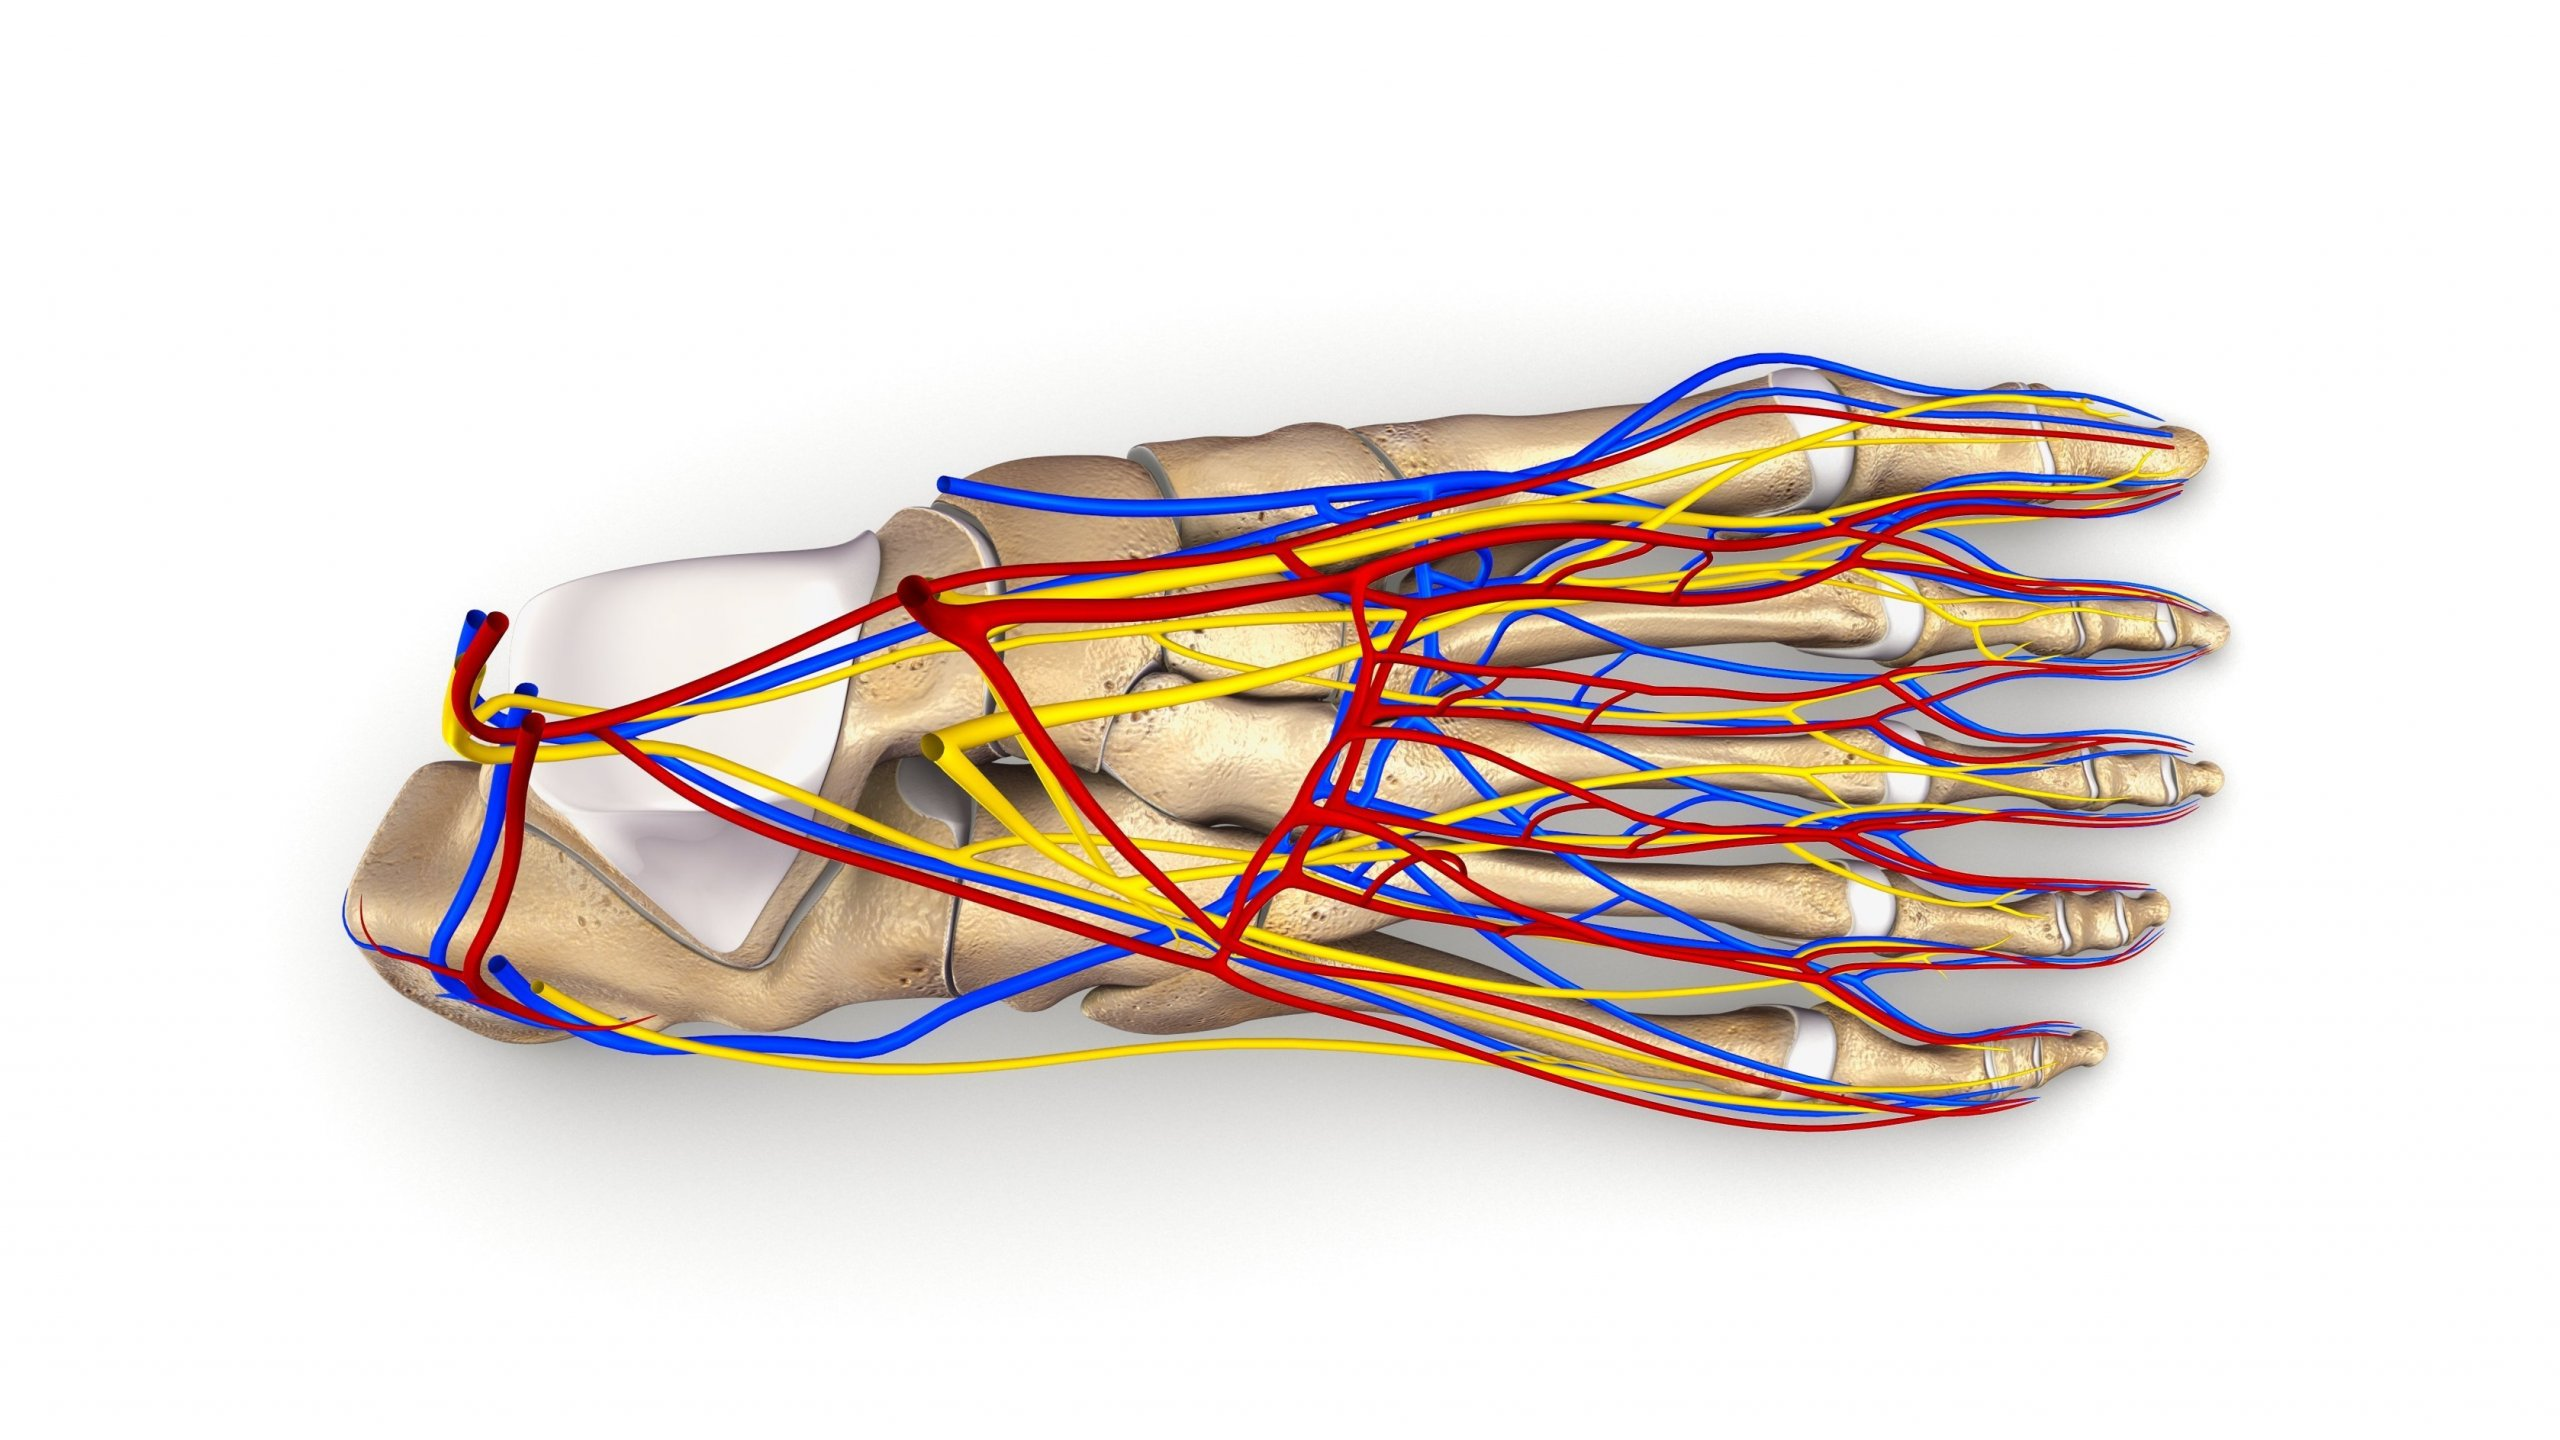 Blood and nerve supply of foot